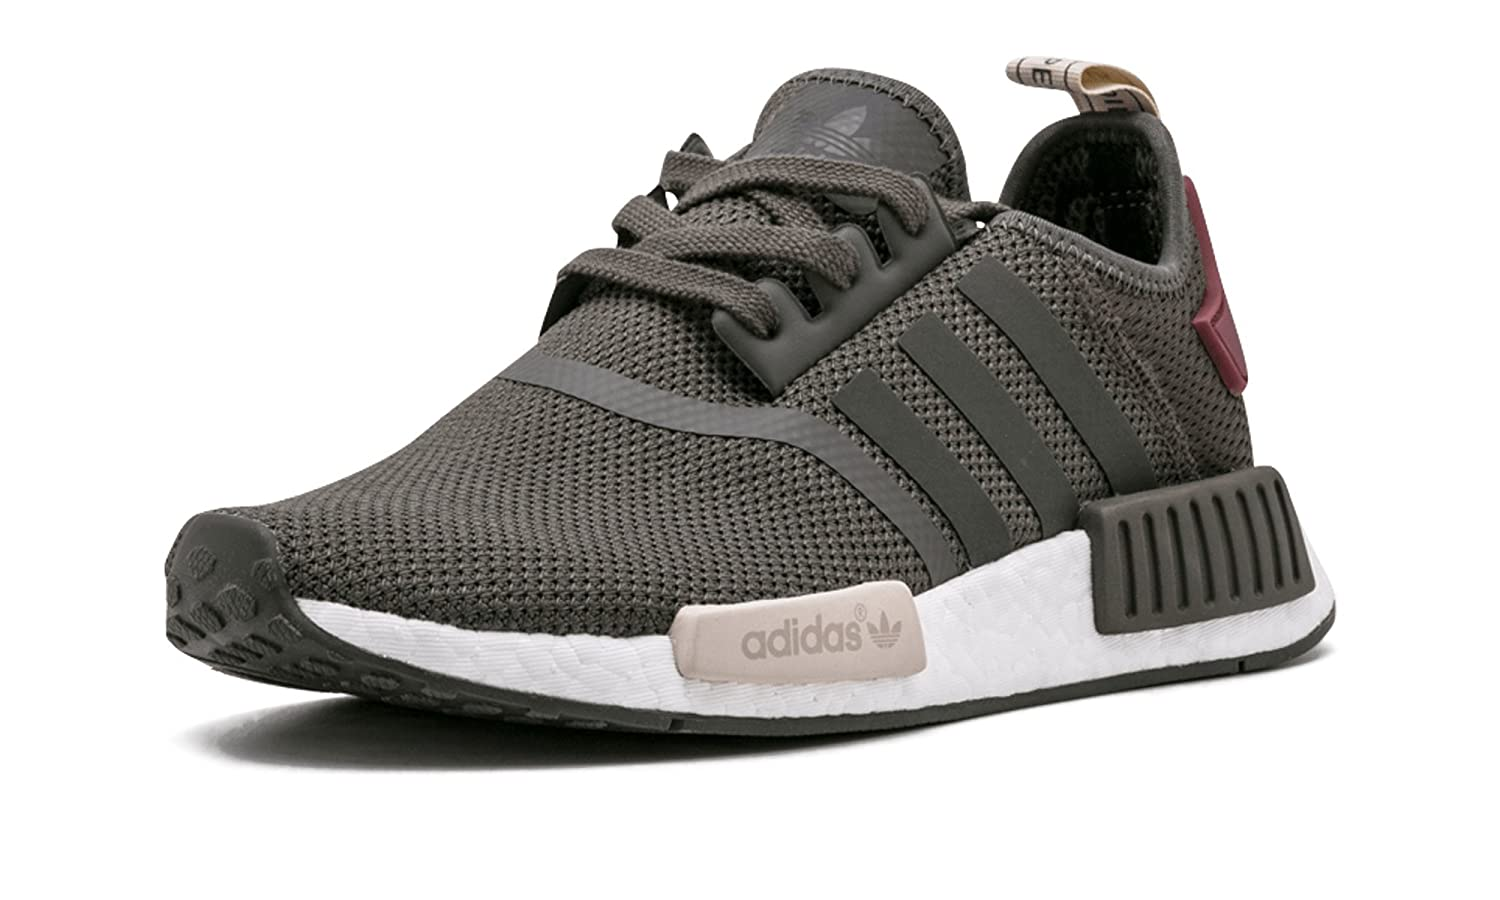 Brown, red, white Adidas Originals Men's Primeknit NMD_R1 Running shoes (Black)